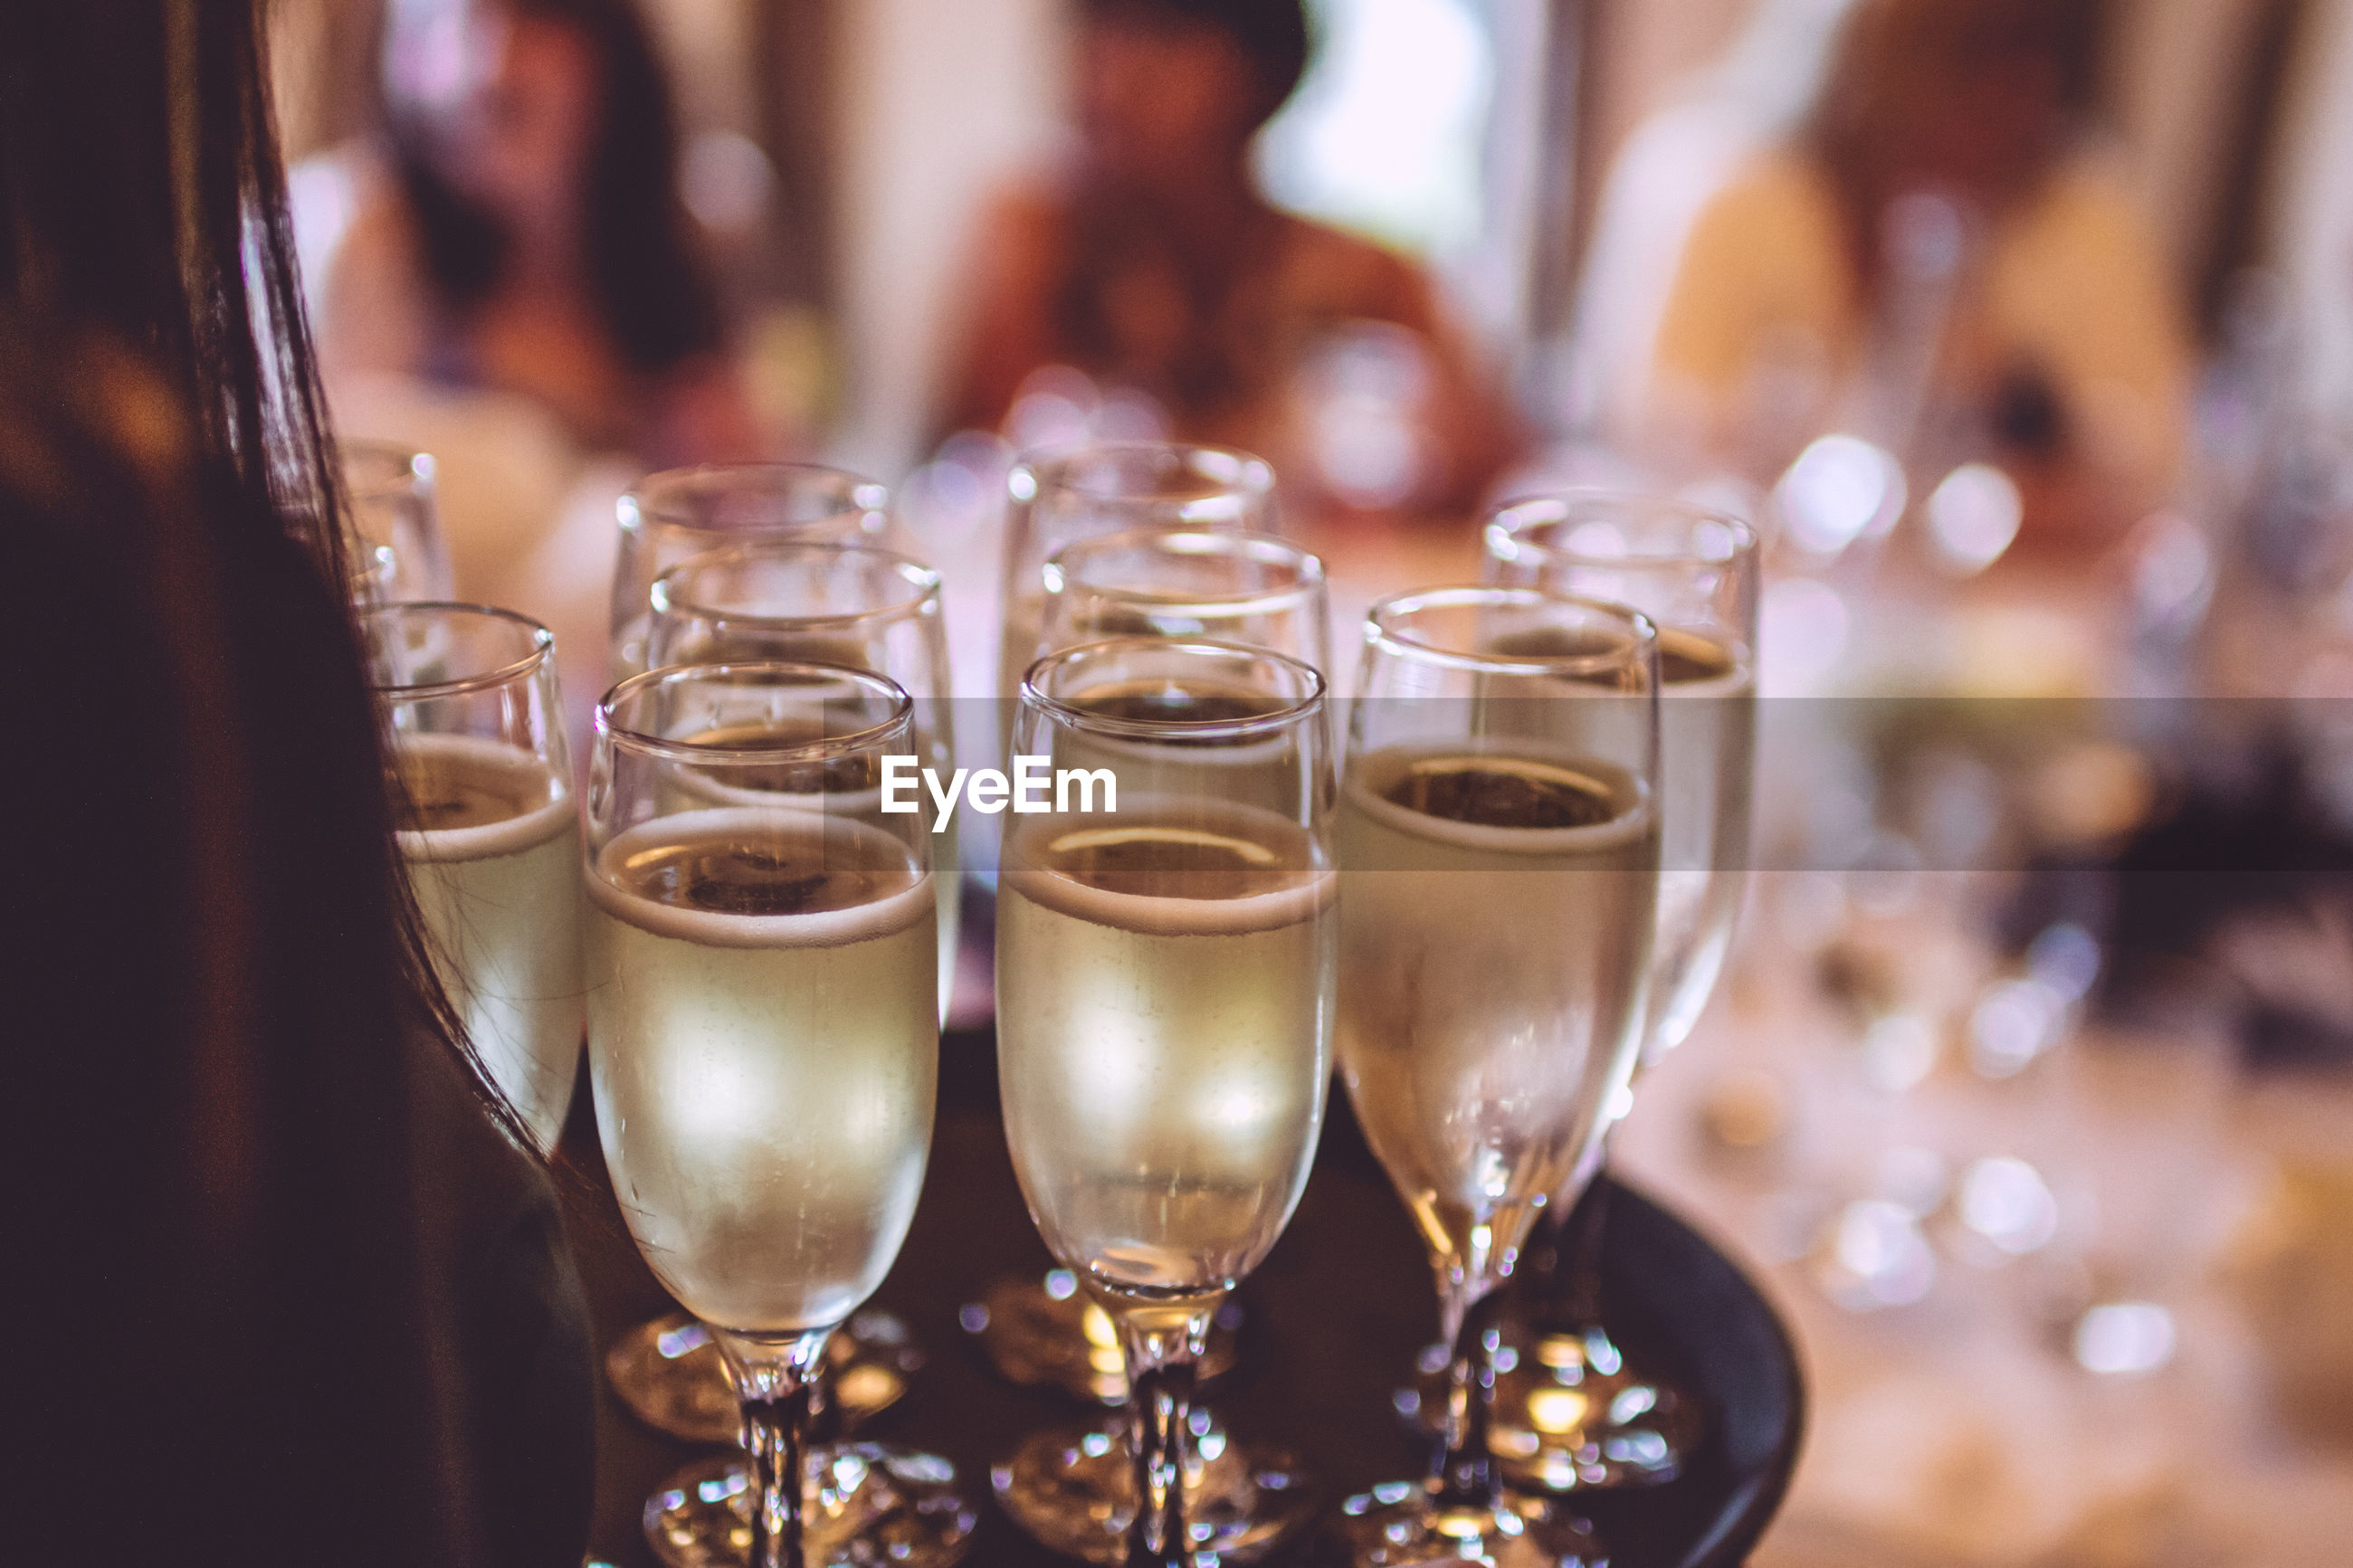 Close-up of champagne glasses on tray at restaurant